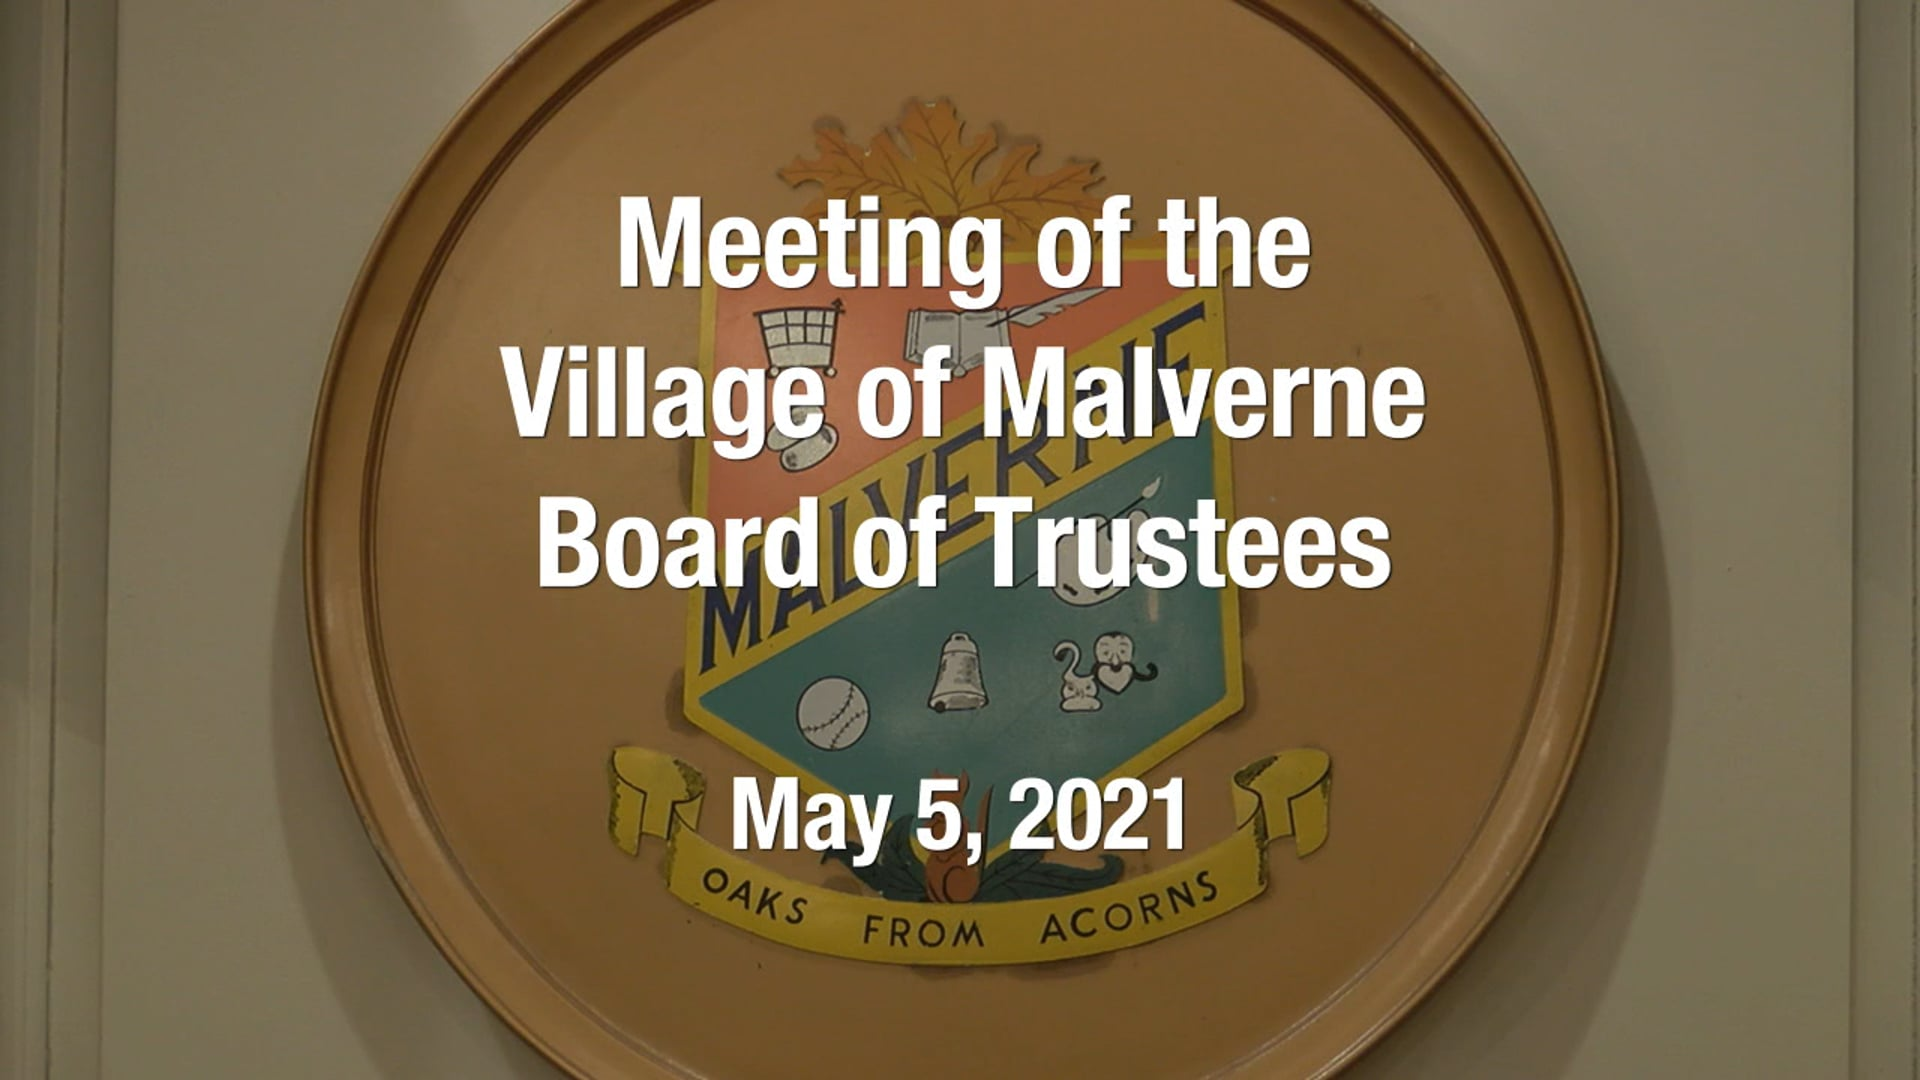 Village of Malverne Meeting of the Board of Trustees -  May 5, 2021